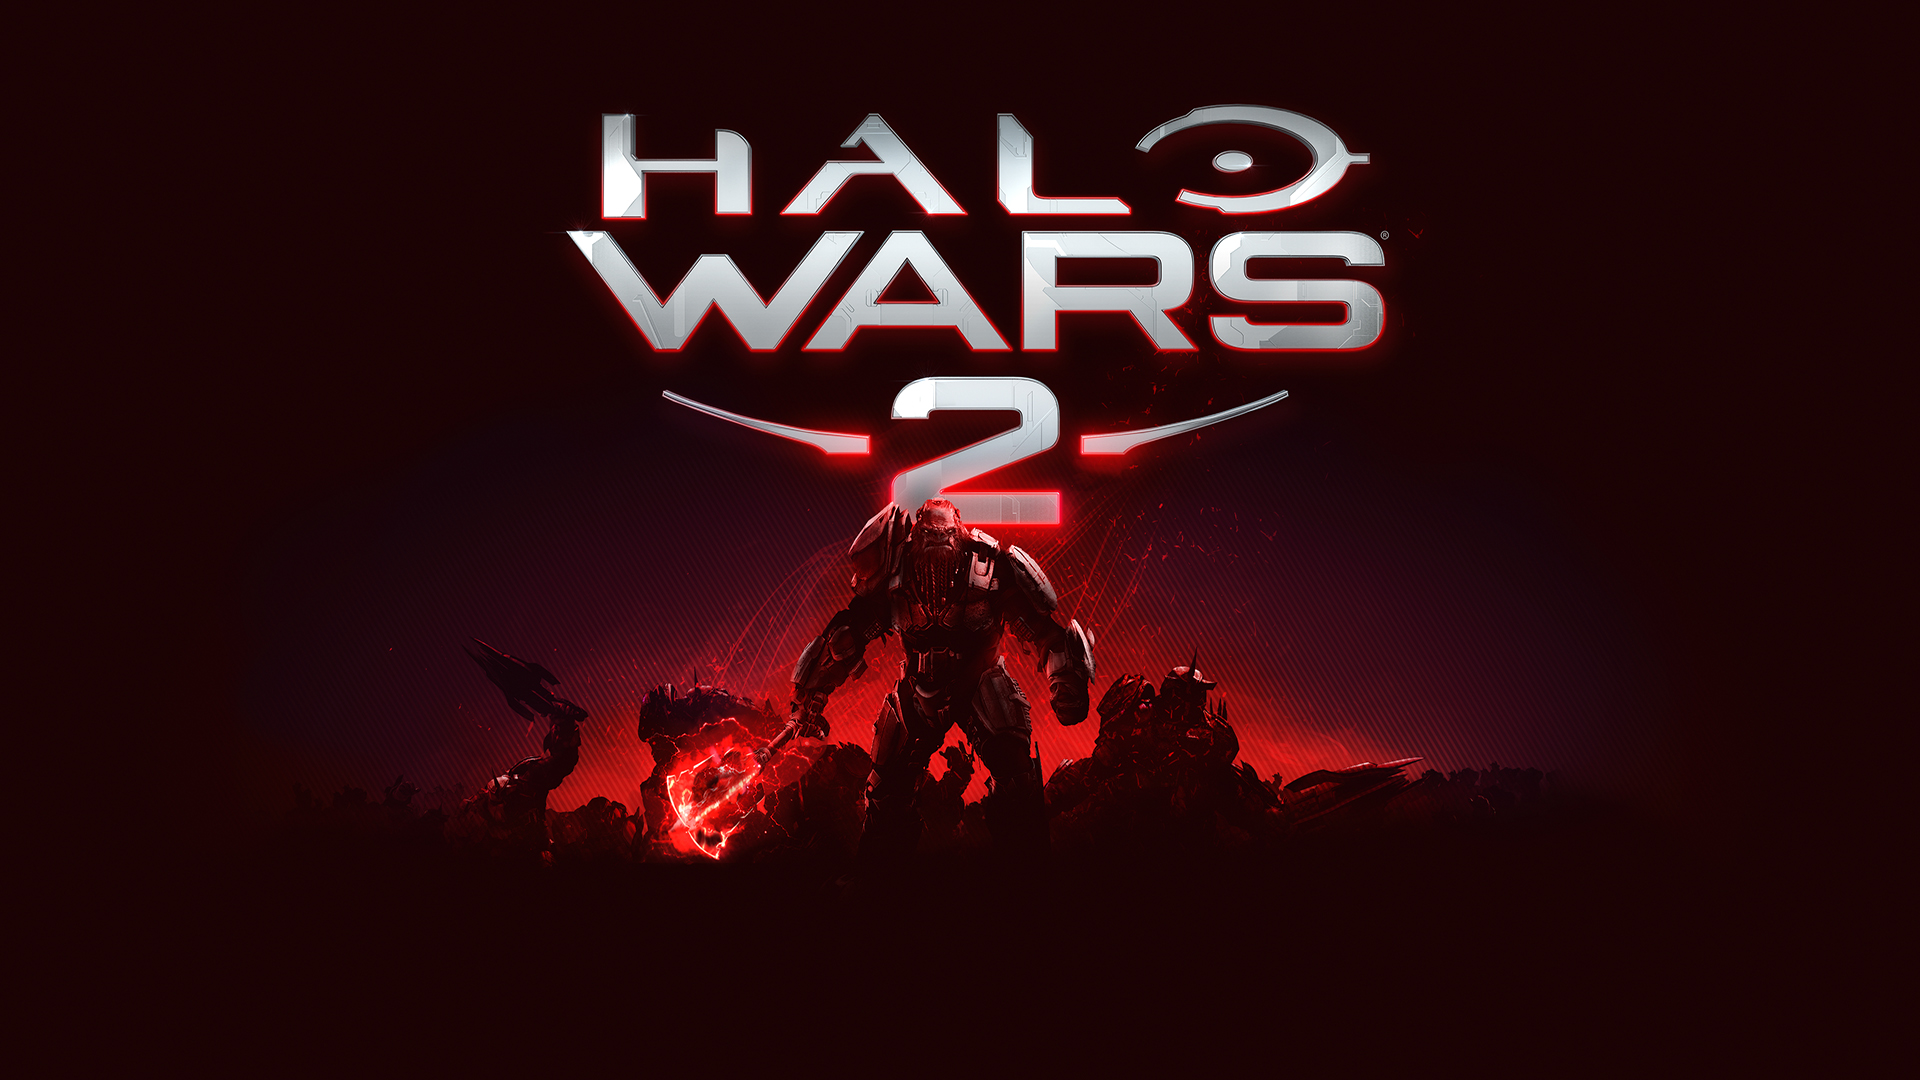 Halo Wars 2 Wallpaper: Wallpapers And Arts